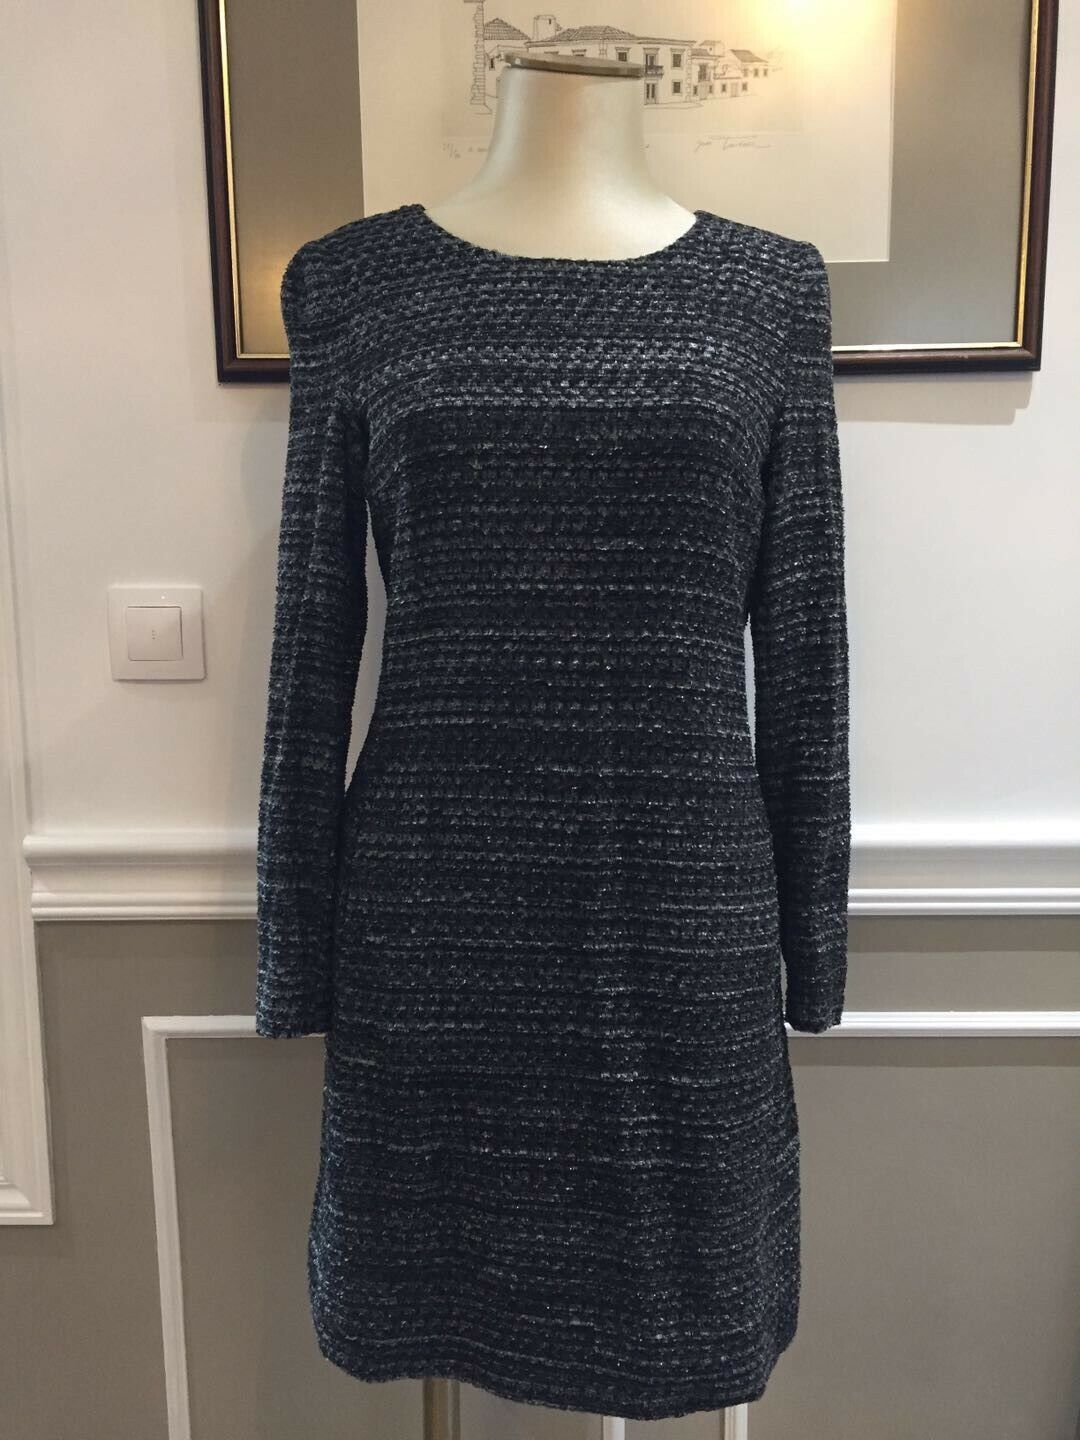 Robe chanel toute neuve t40 / brand new and authentic chanel dress